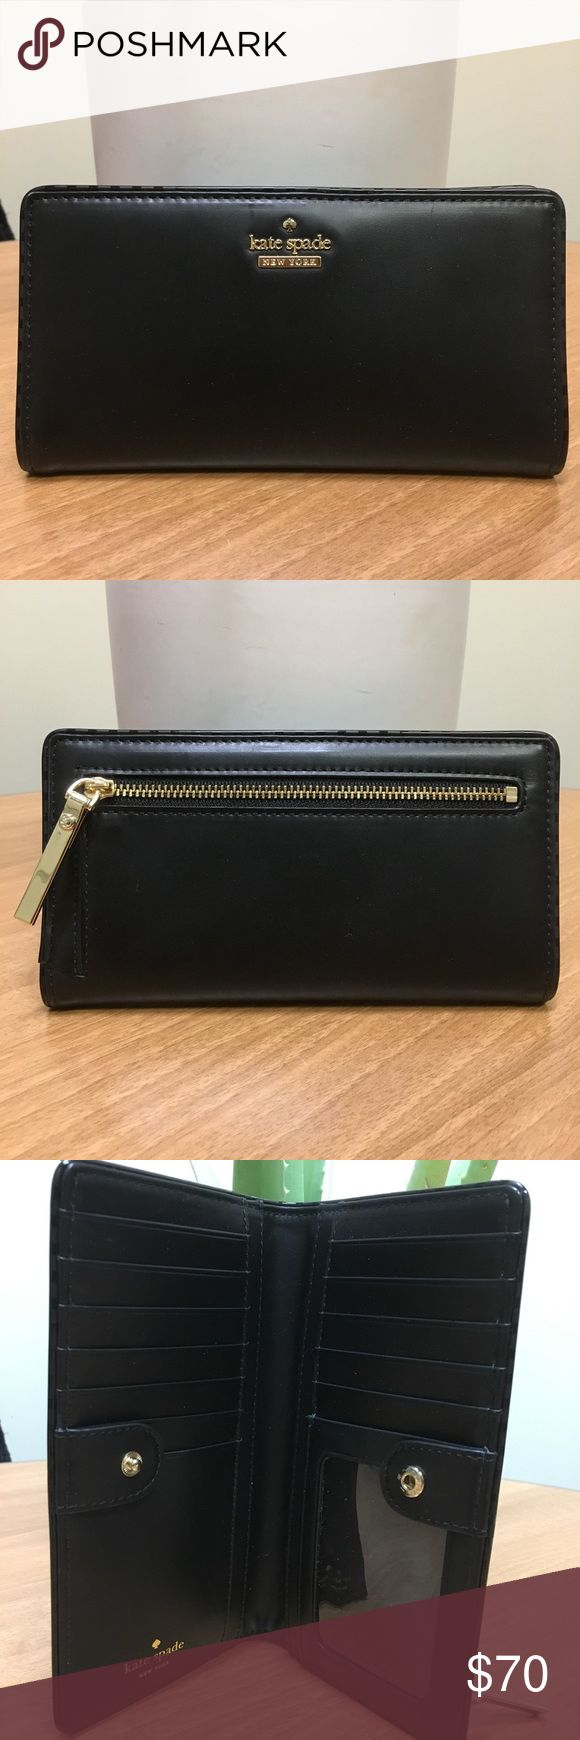 Kate Spade Wallet Kate Spade Stacy Wallet Smooth Black Leather.   New from a KS Sample sale kate spade Bags Wallets